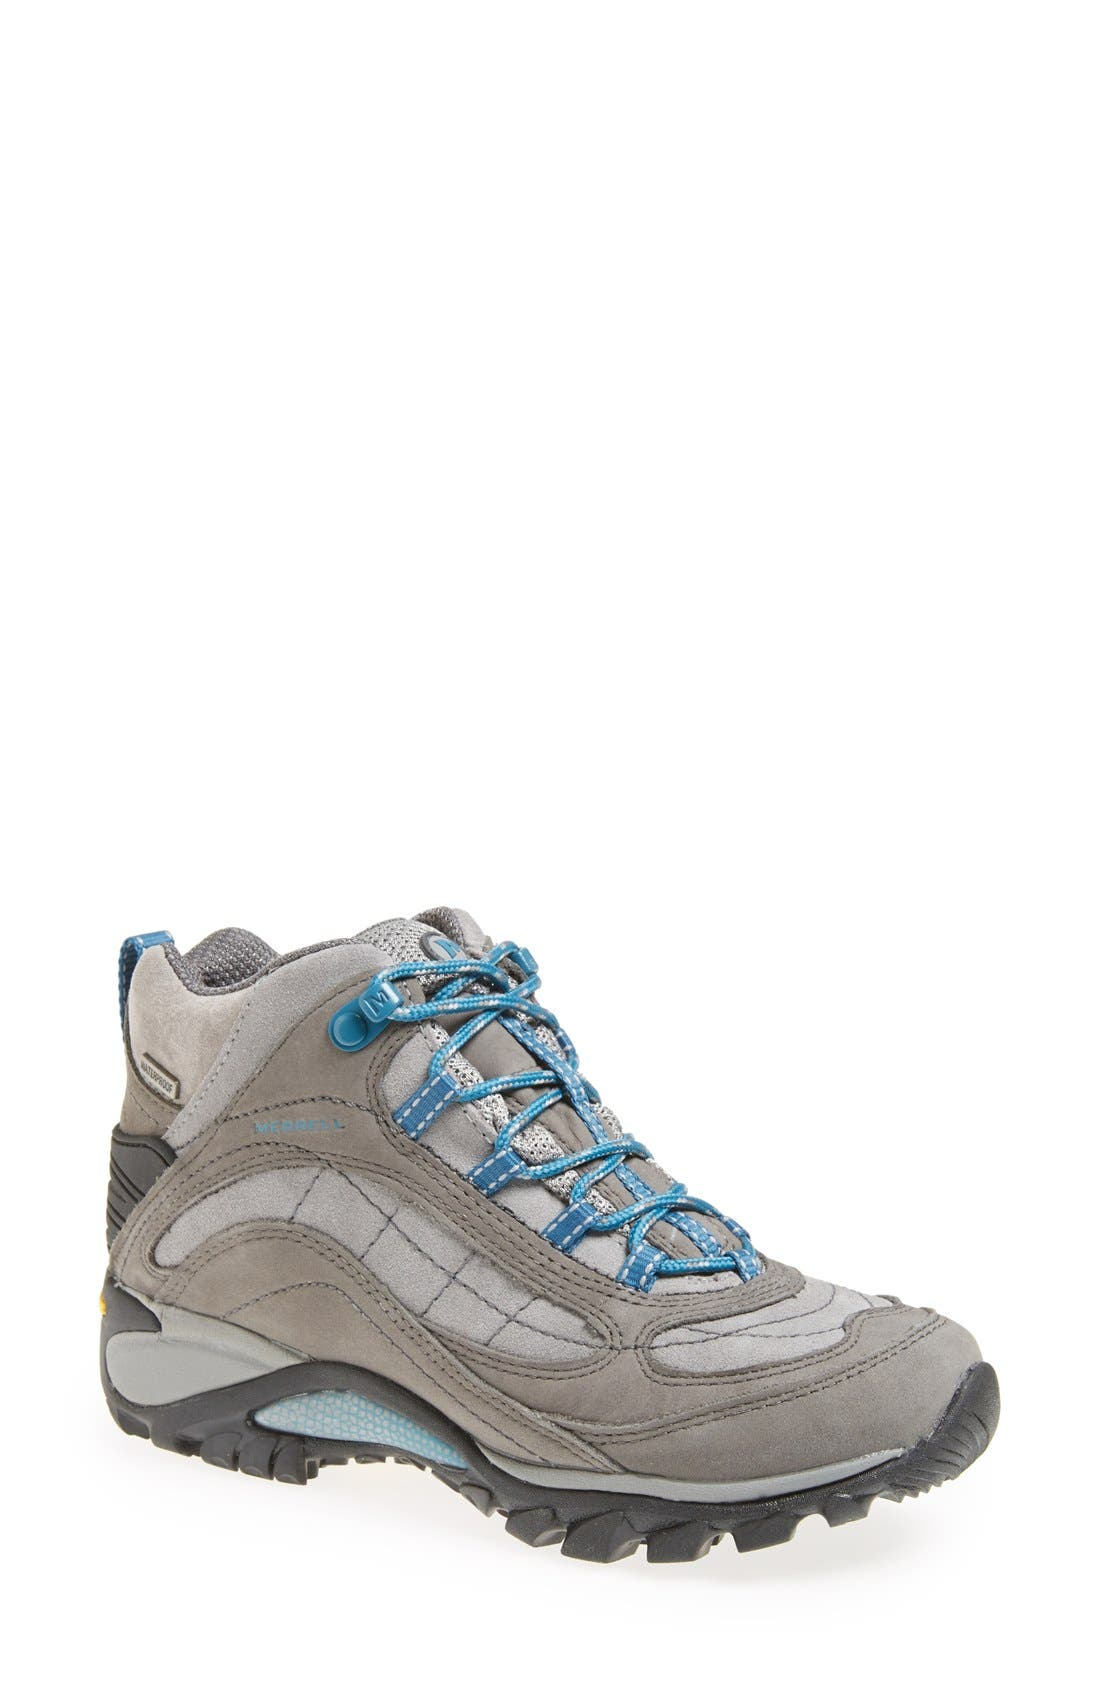 Alternate Image 1 Selected - Merrell 'Siren' Waterproof Leather Hiking Boot (Women)